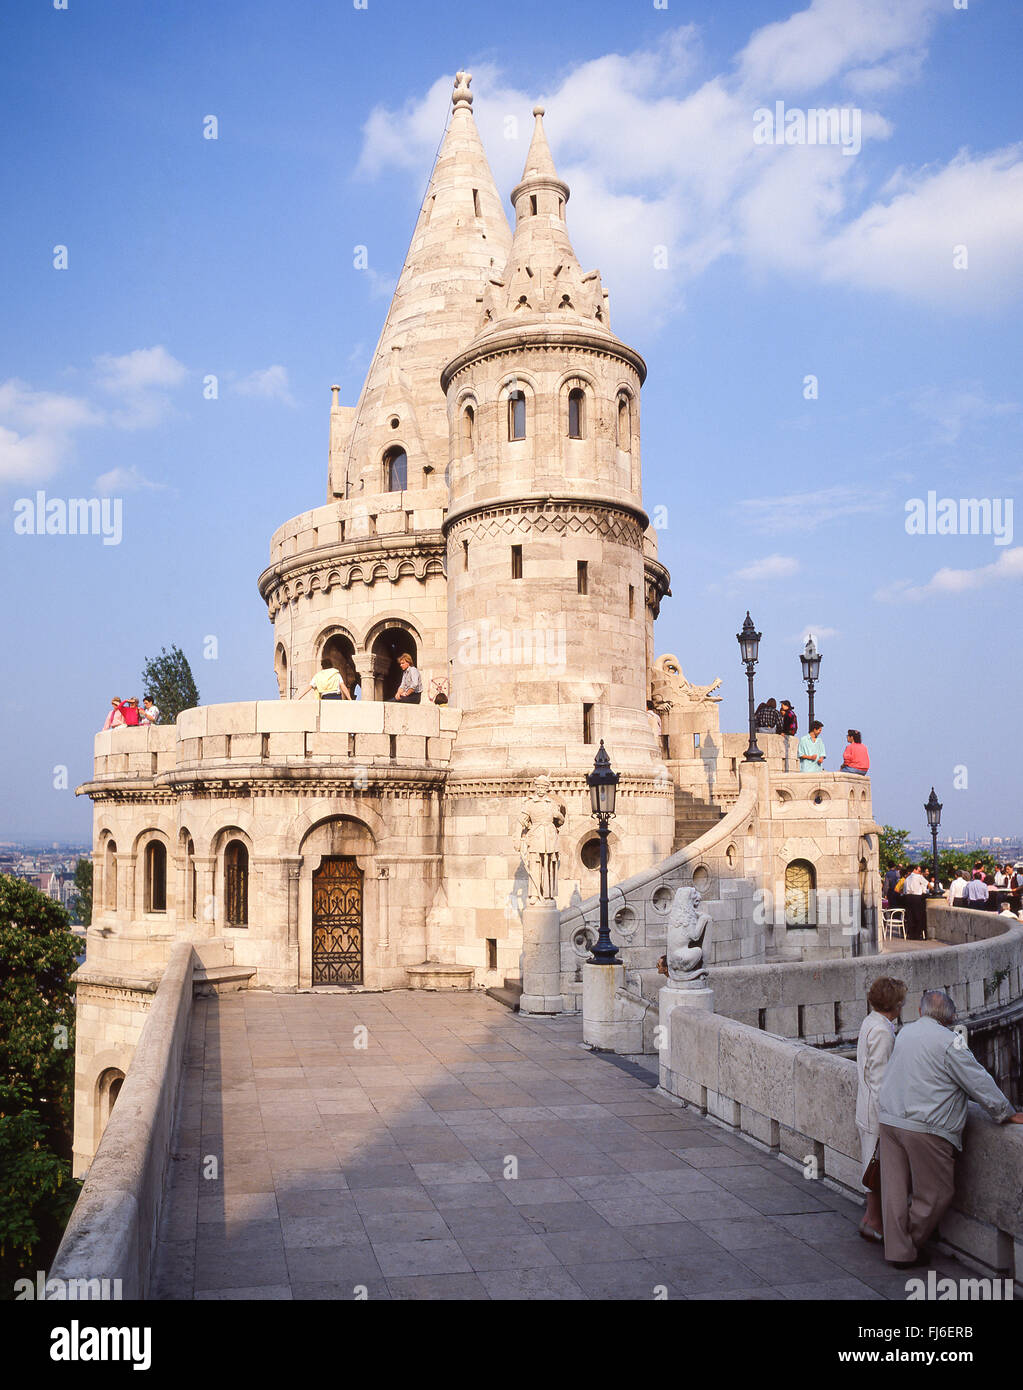 Fisherman's Bastion (Halászbástya), Castle Hill, The Castle District, Buda District, Budapest, Republic - Stock Image